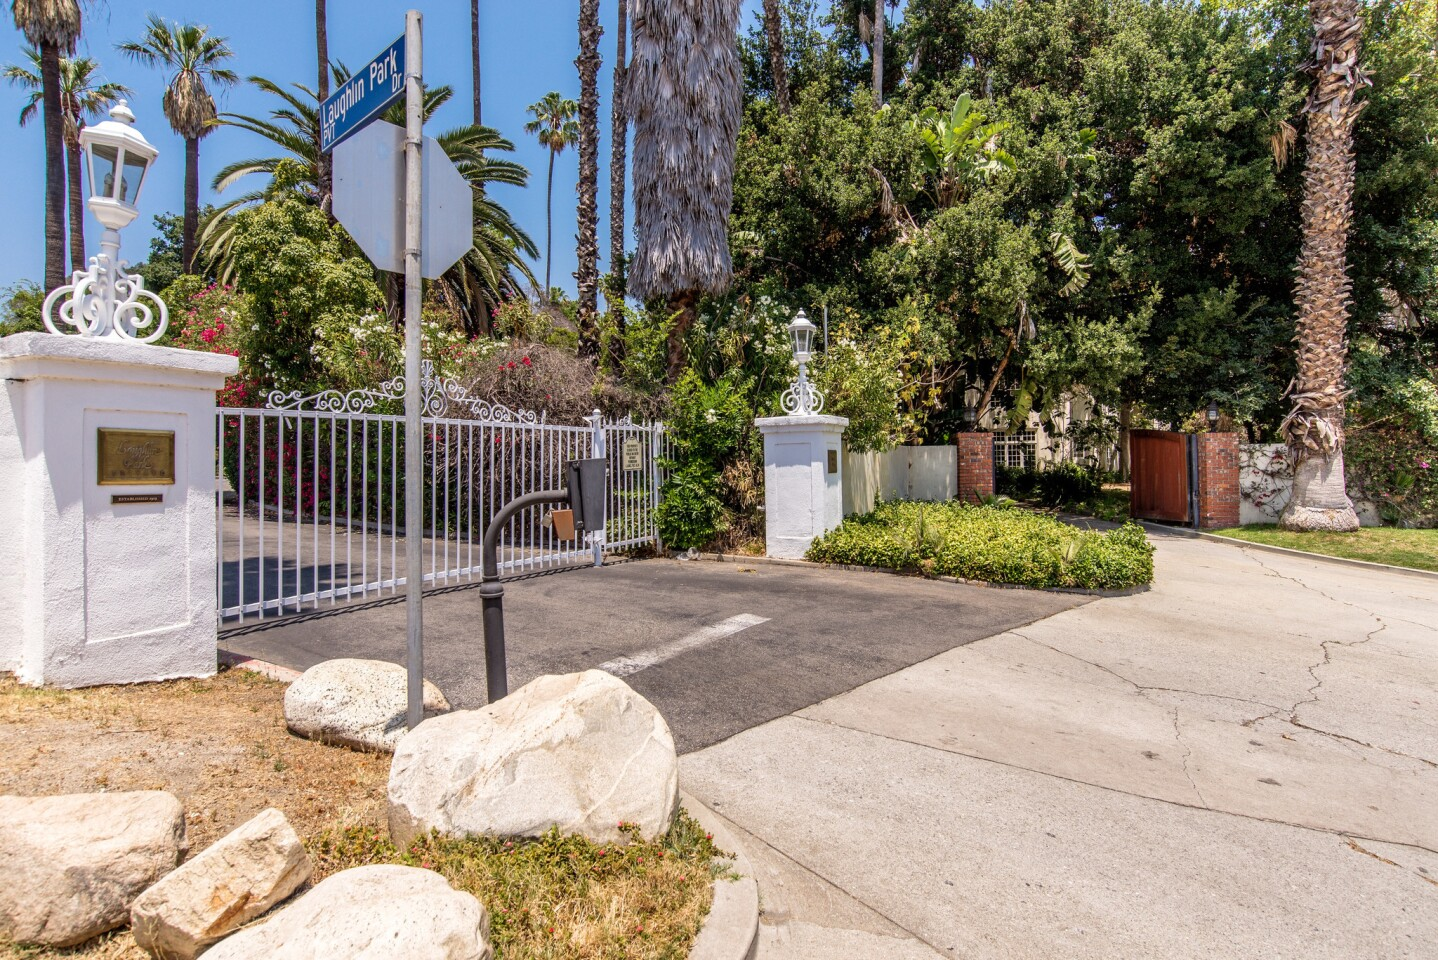 Home of the Day: In Los Feliz, an English Revival surrounded by Hollywood history